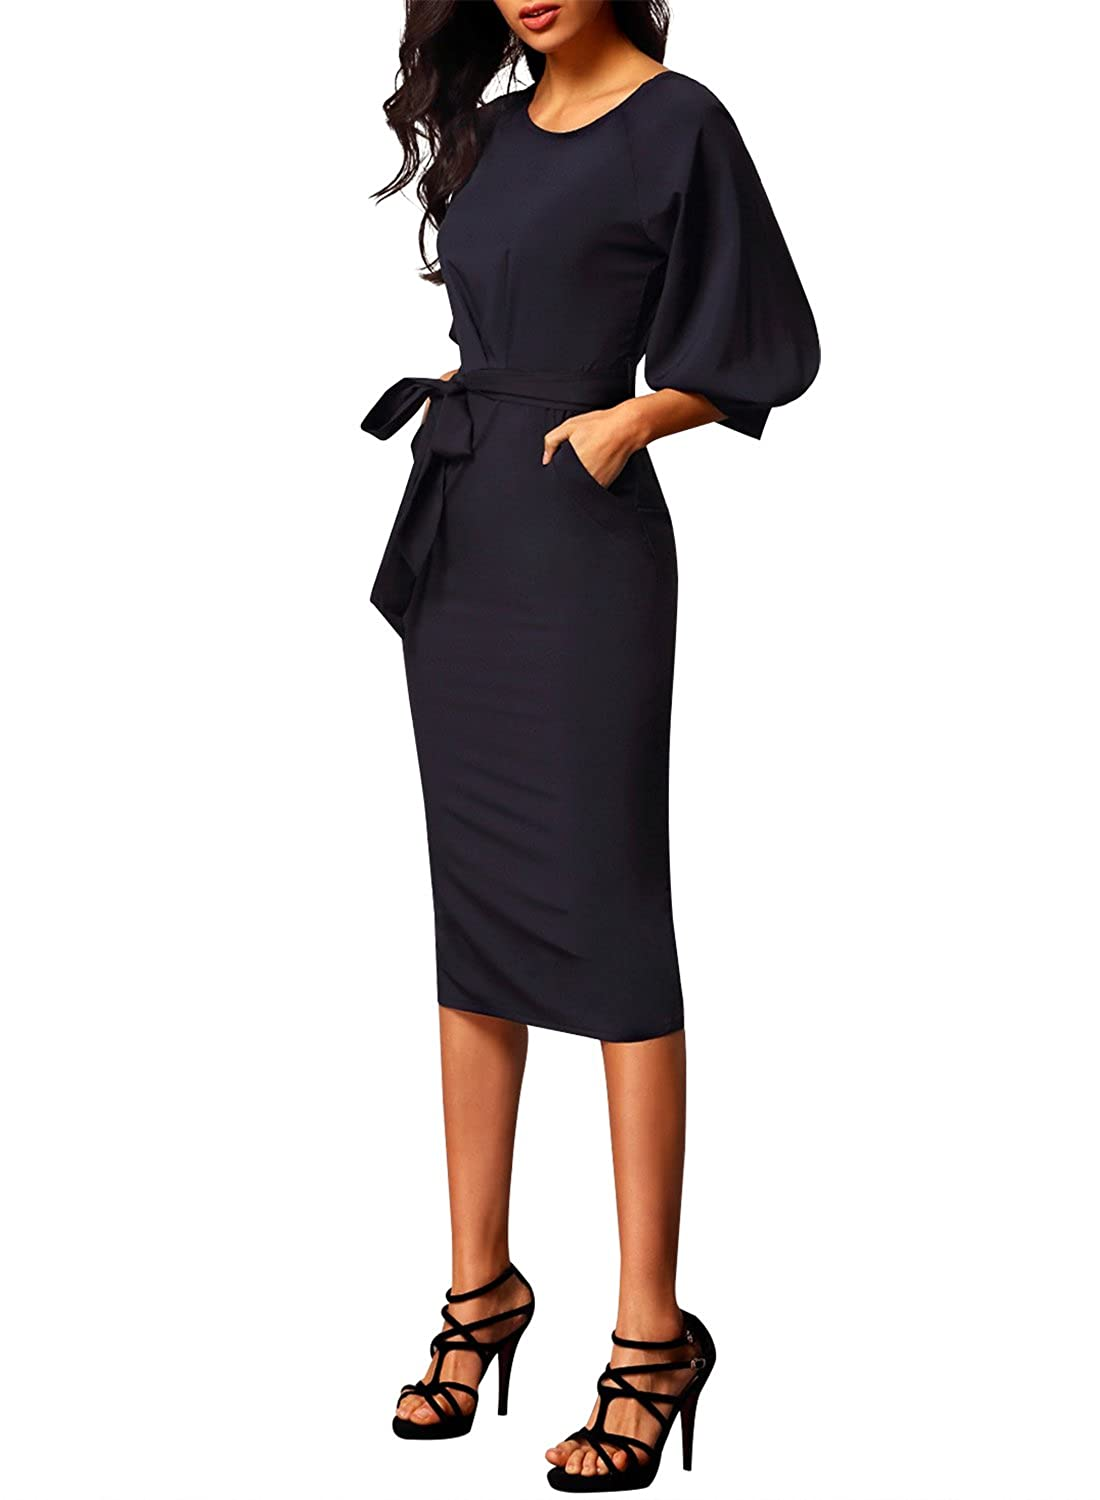 1e87bd42 Bulawoo Women's Round Neck Puff Sleeve Belted Pencil Dress with Pockets  Large Size Black: Amazon.co.uk: Clothing